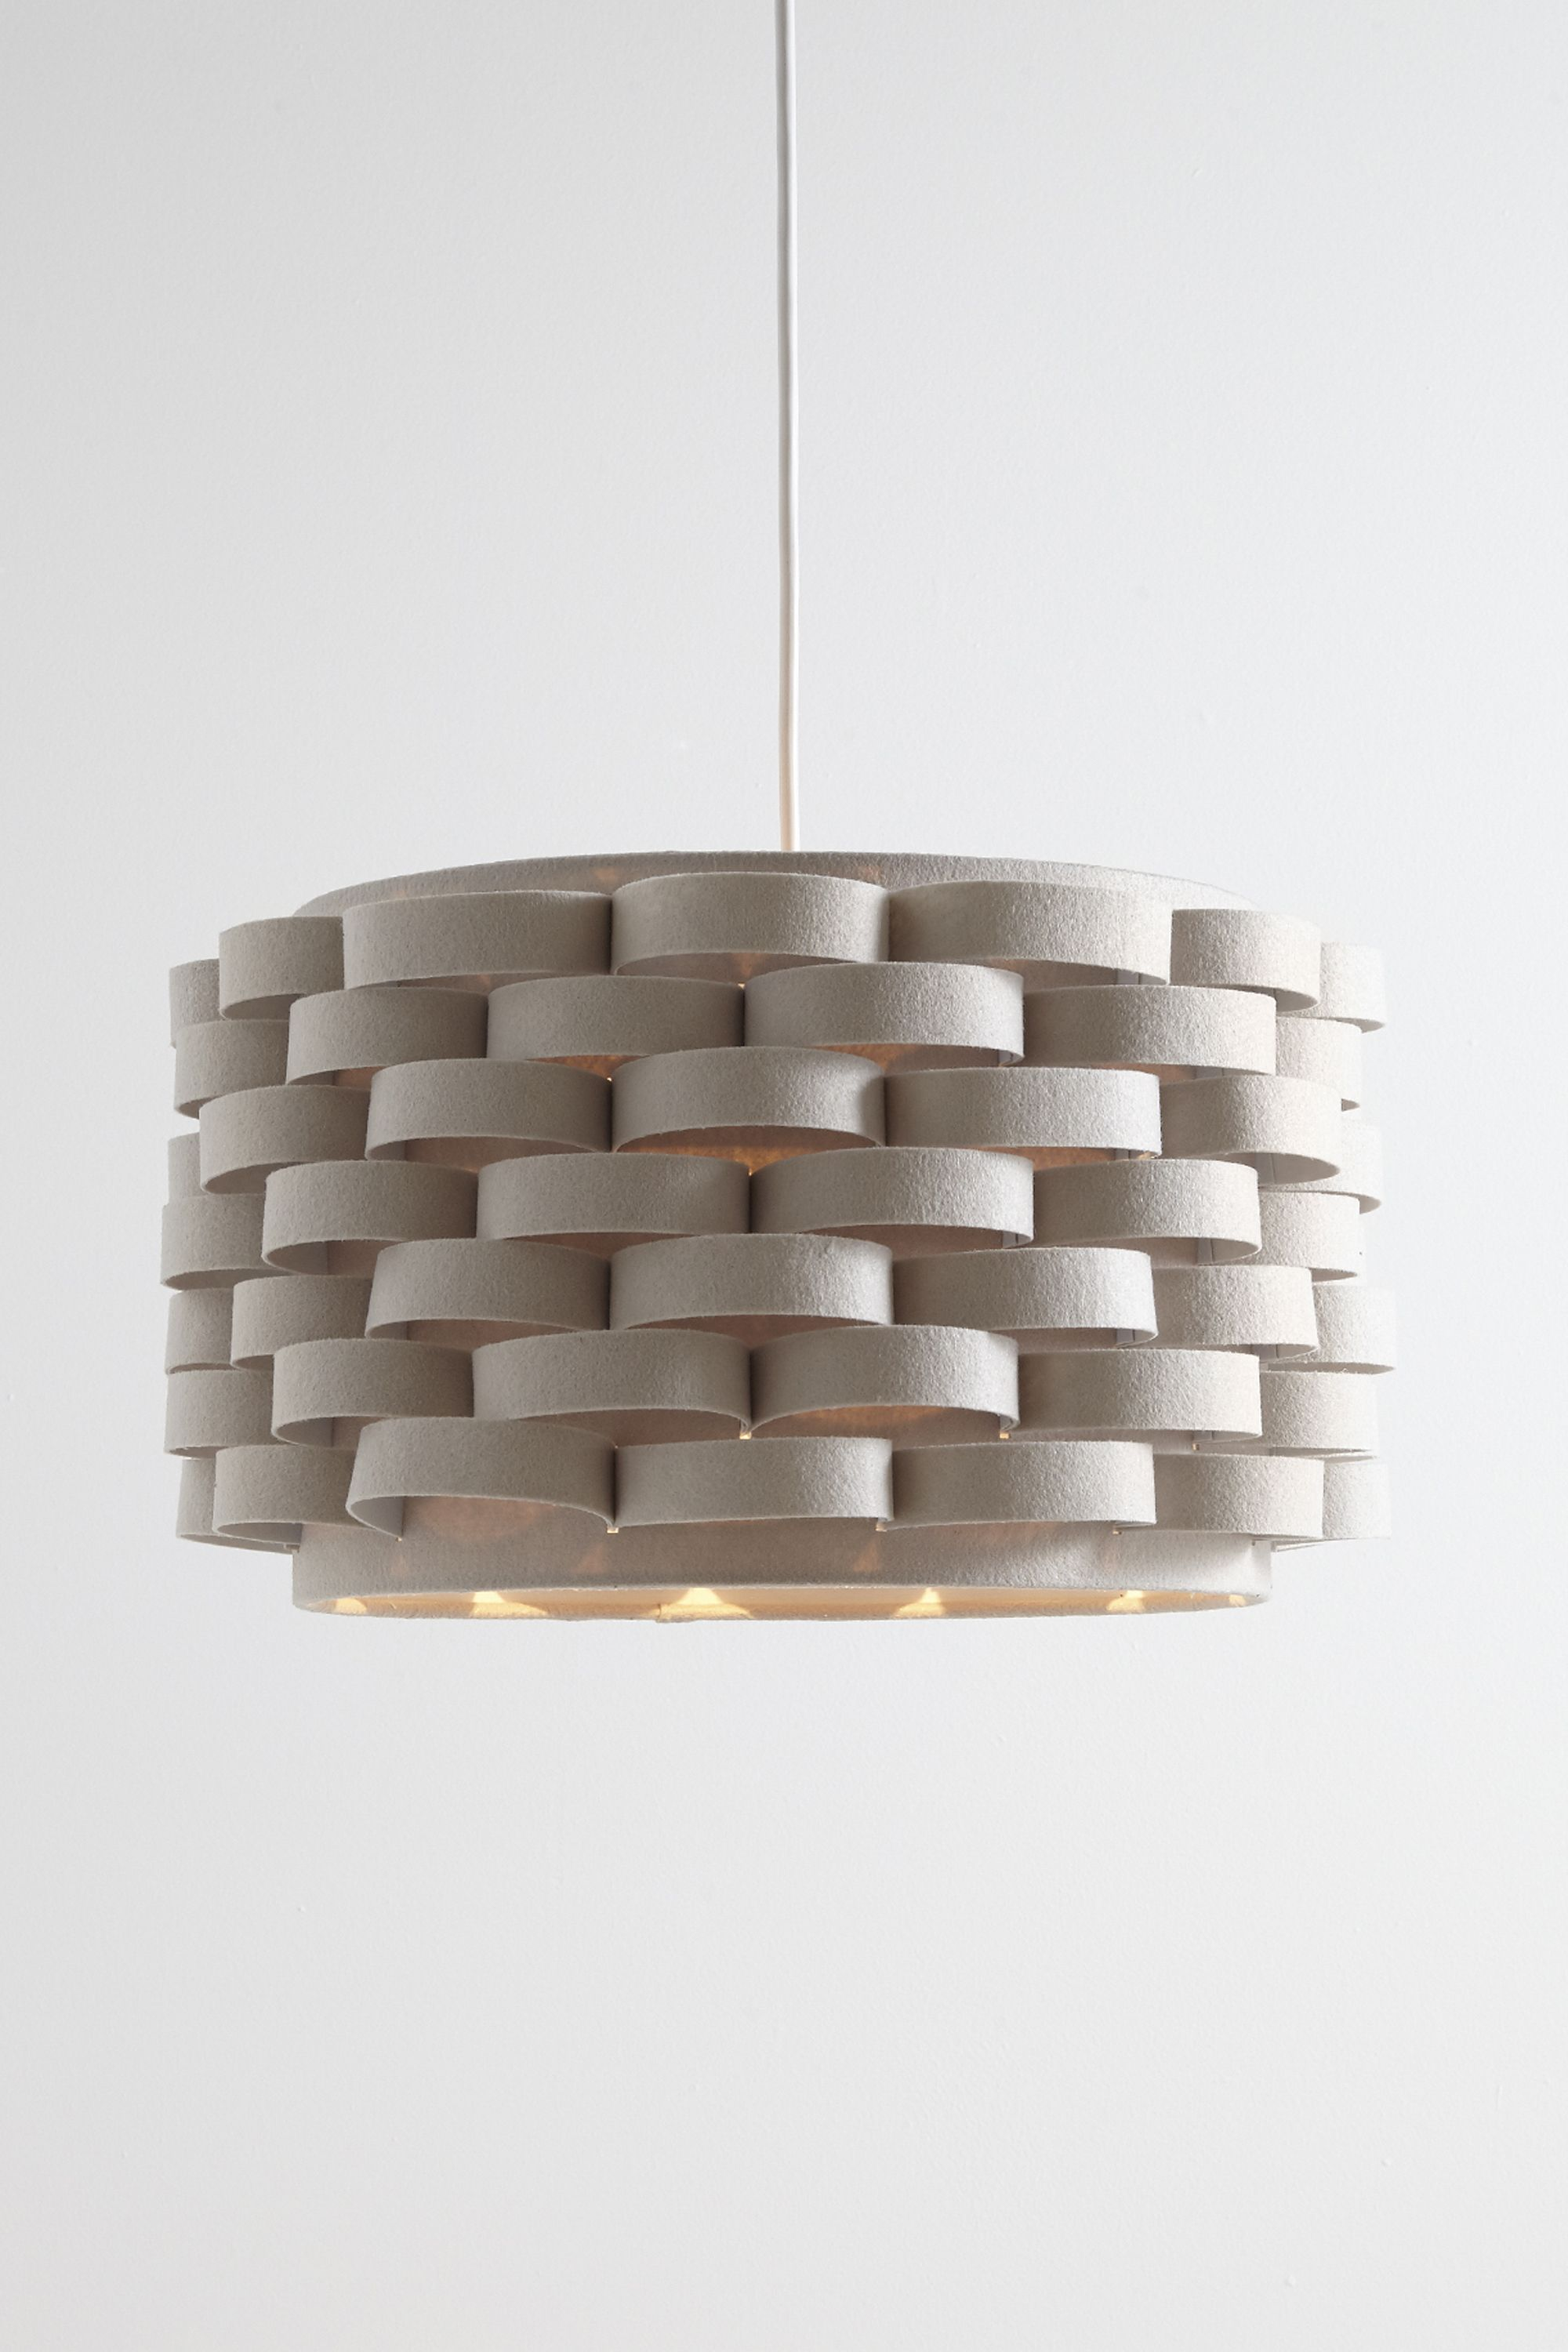 Loopy felt drum shade light easy fit ceiling lights lighting loopy felt drum shade light easy fit ceiling lights lighting categories bhs aloadofball Image collections